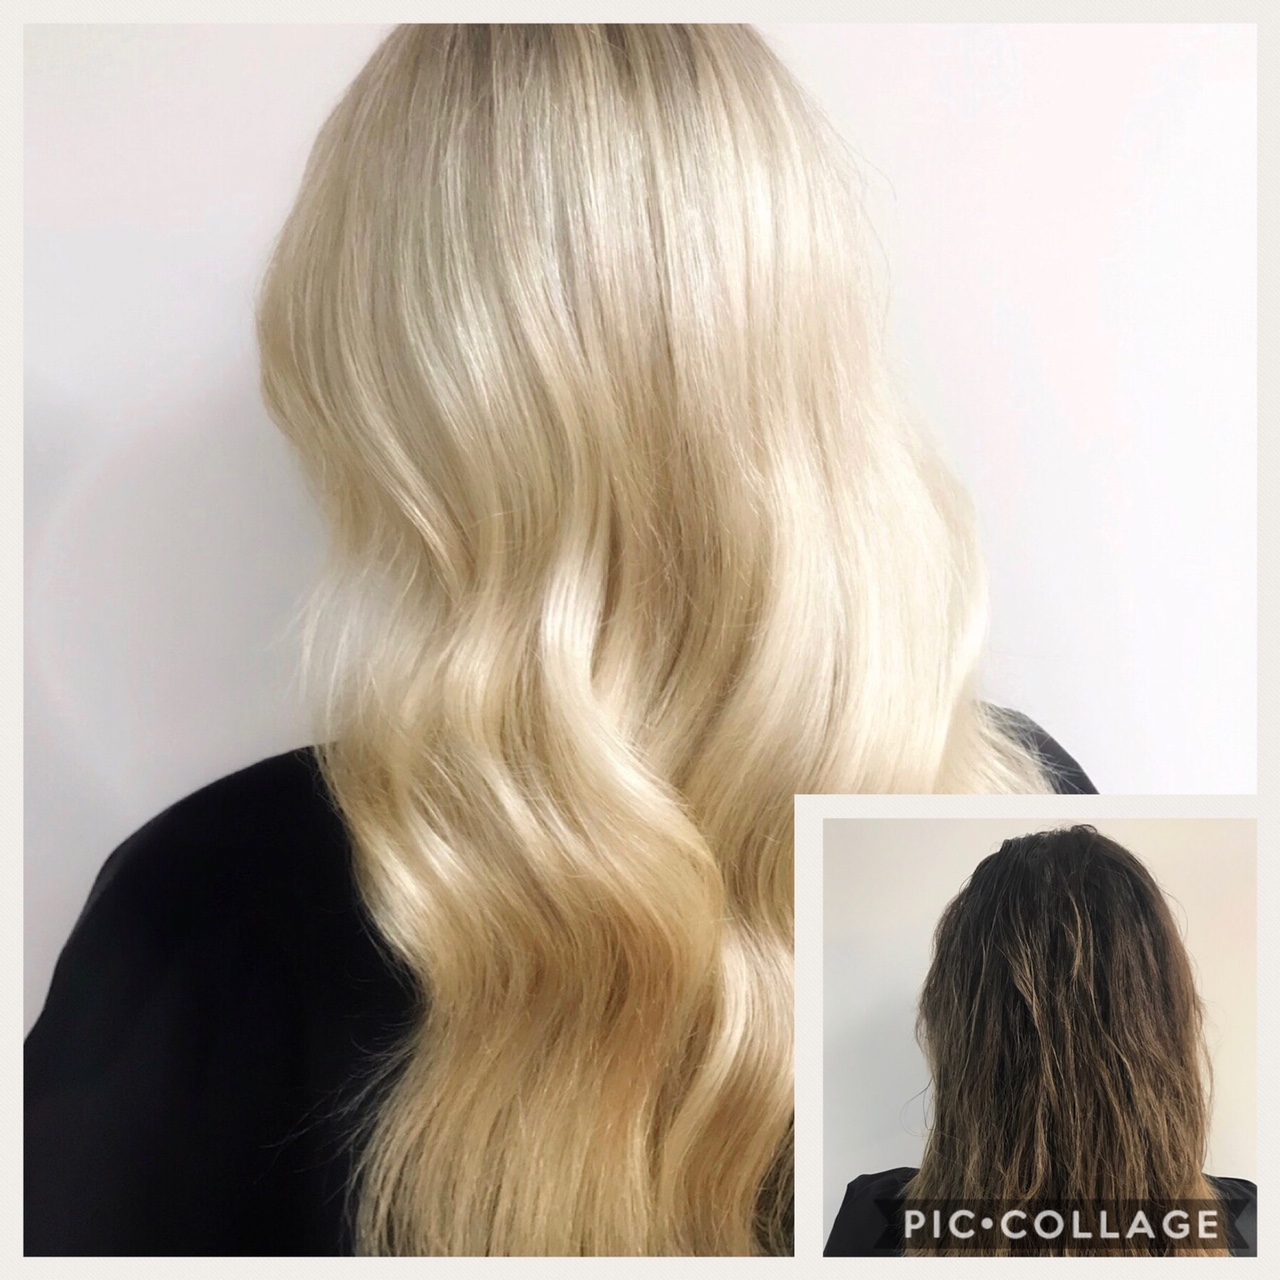 Before and After image of long blonde hair extensions to replace short tired brown hair-hair salon solana beach -Salon LG-+1 858 344 7865.